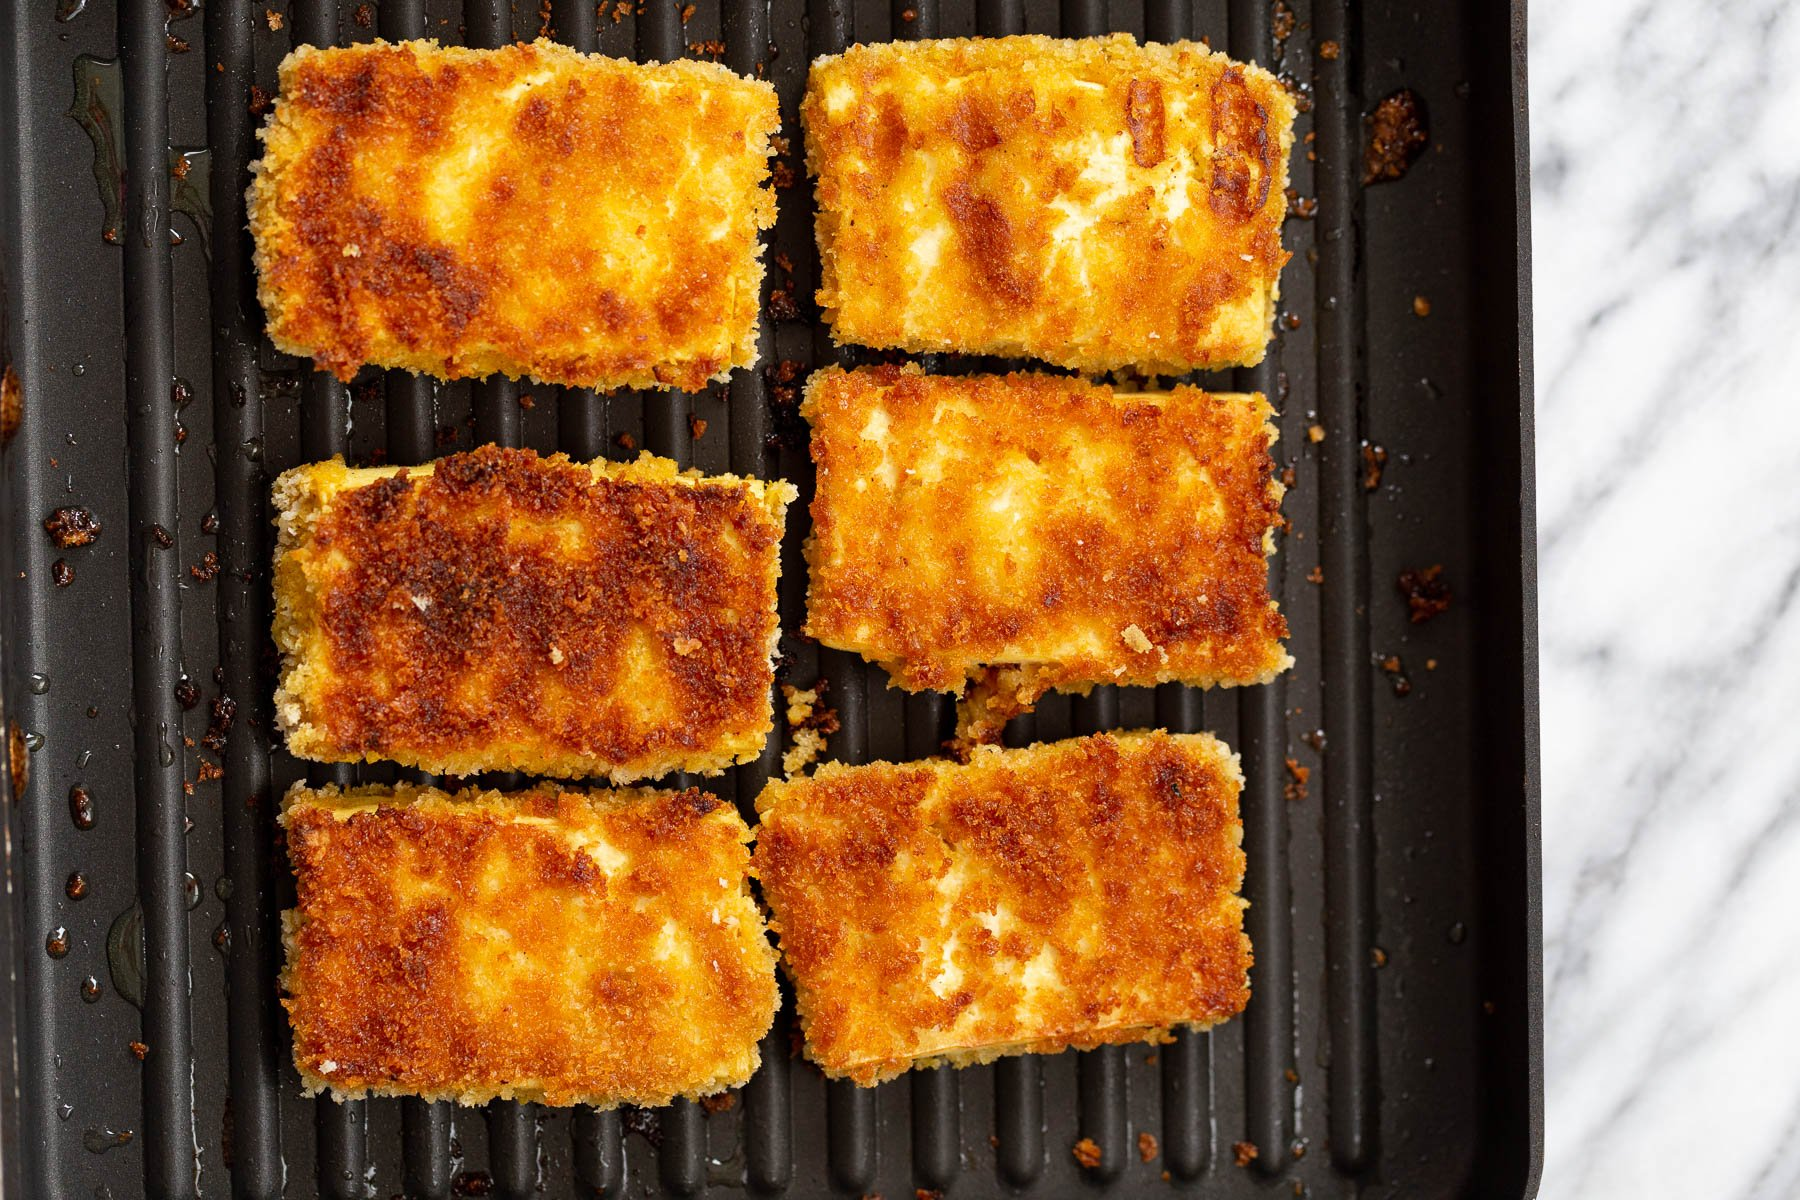 breaded tofu sliced being fried in a grilling pan